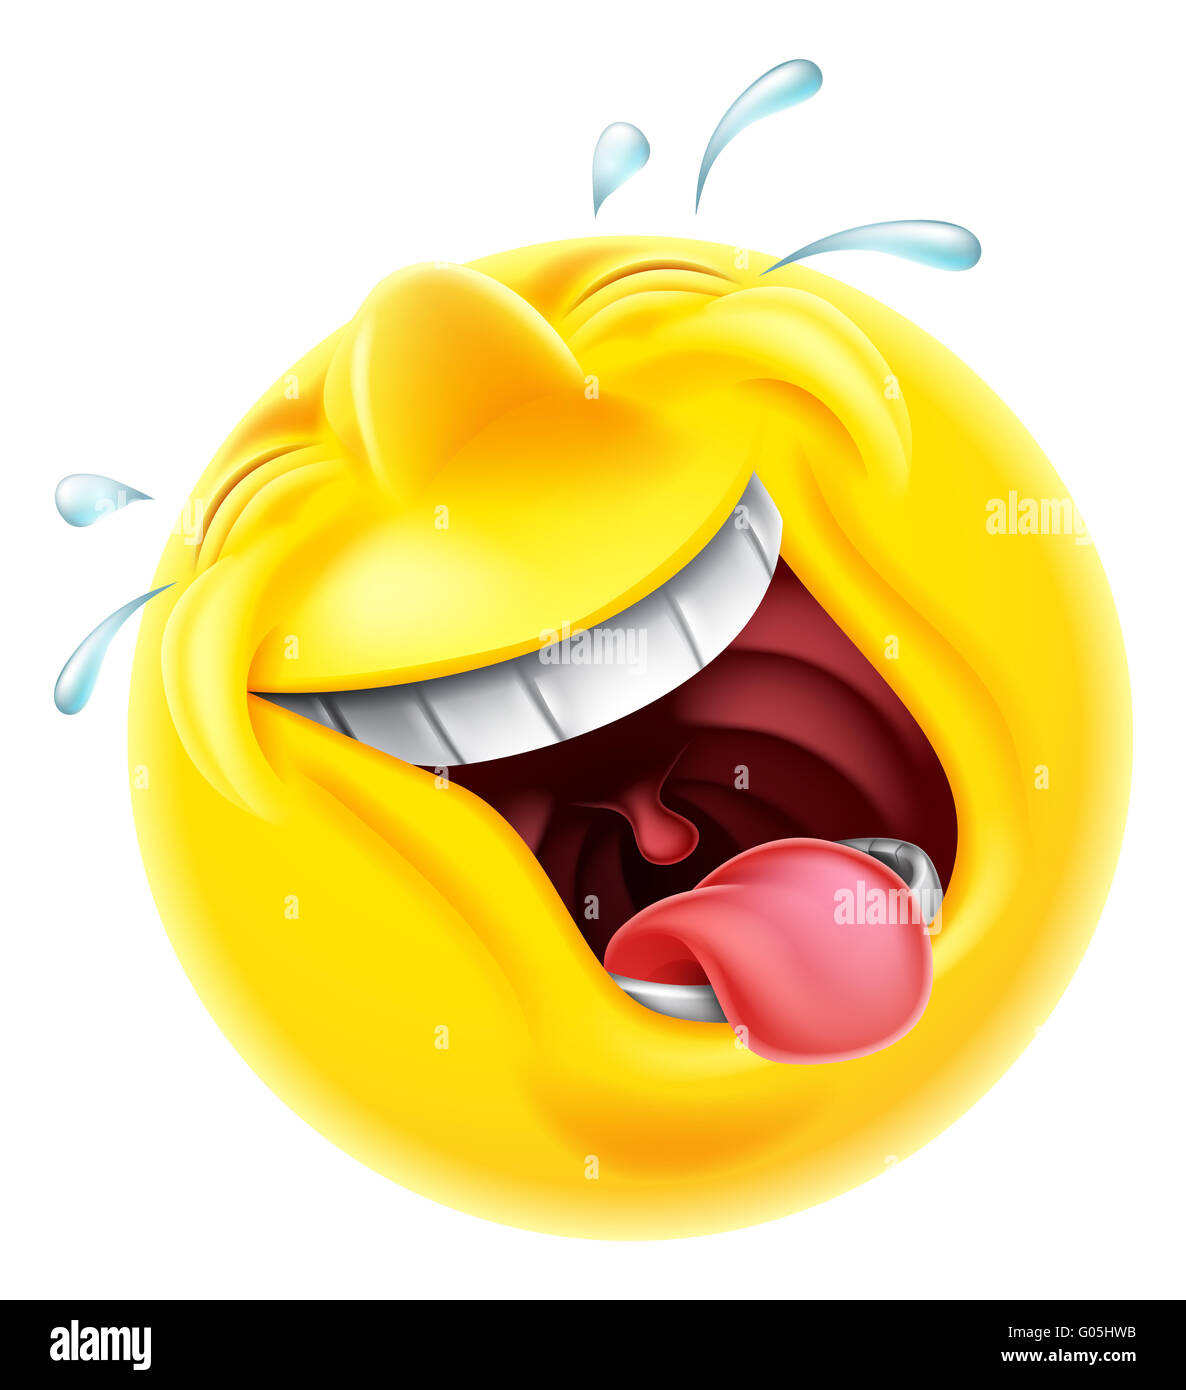 A very happy laughing emoji emoticon smiley face character ...